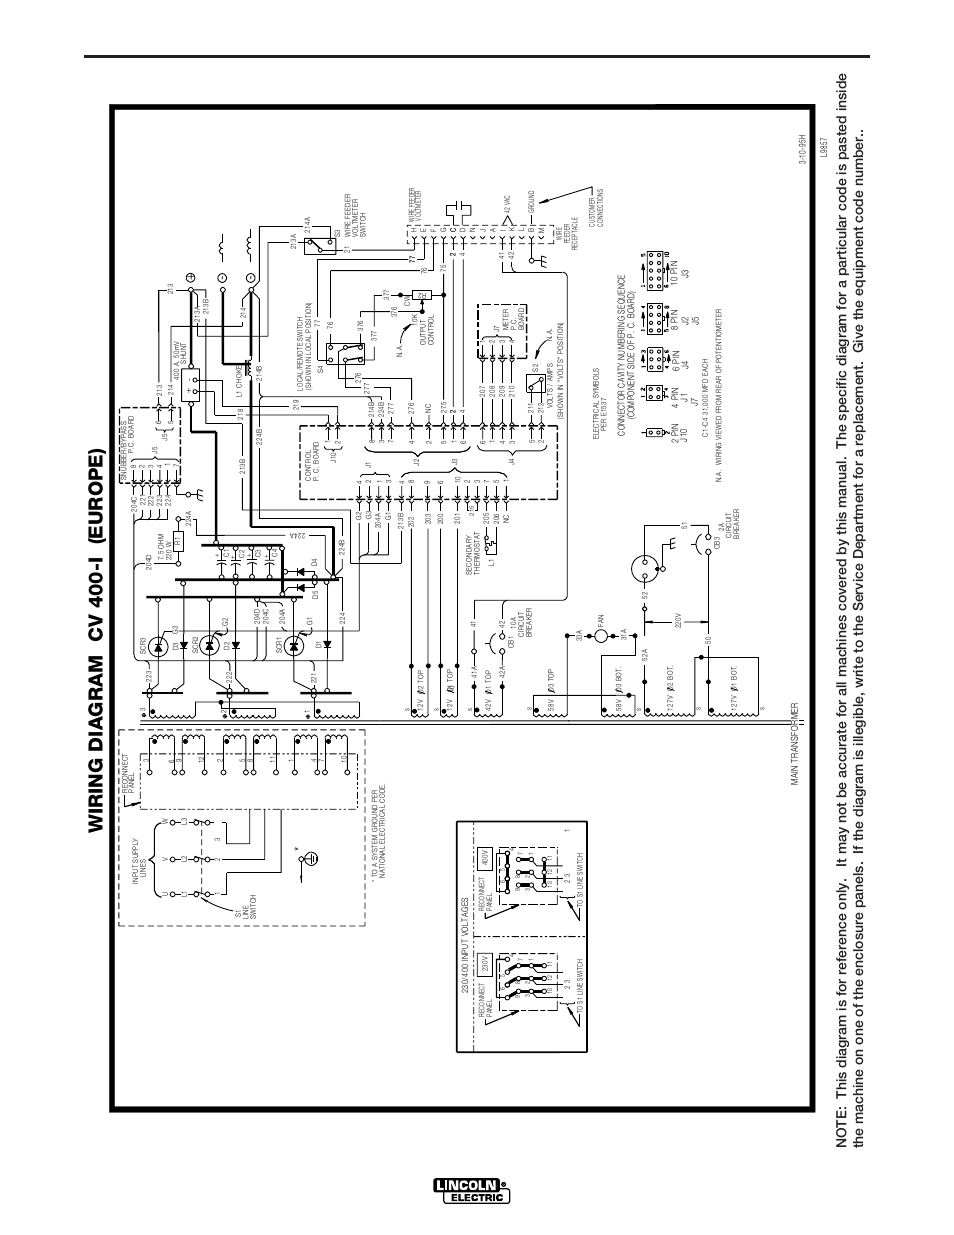 diagrams cv 400 i wiring diagram cv 400 i europe lincoln rh manualsdir com